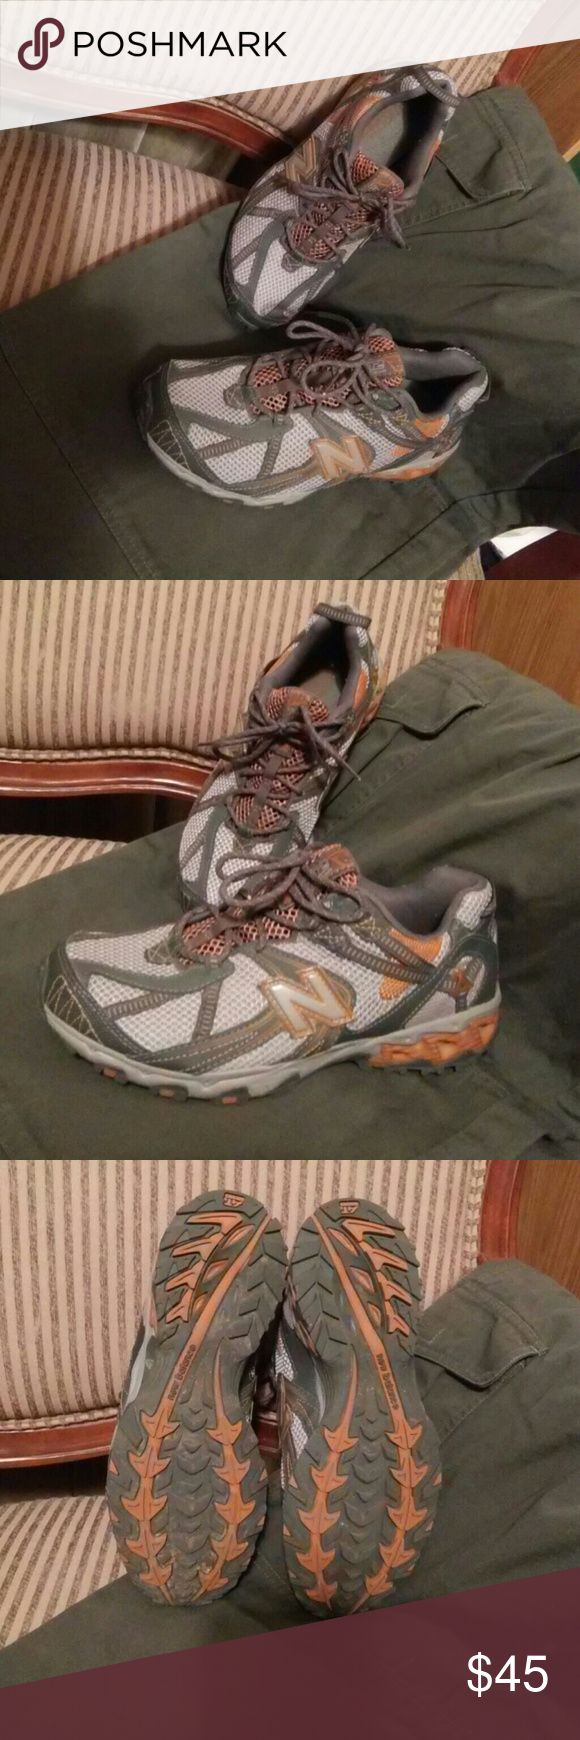 *CCO* Fit w's 9 572 all terrain New Balance 😀 Tough looking and functional. EUC Will fit women's size 9. Silver, two-tone gray and orange. You will love the look of these shoes. No tread missing at all. New Balance Shoes Athletic Shoes